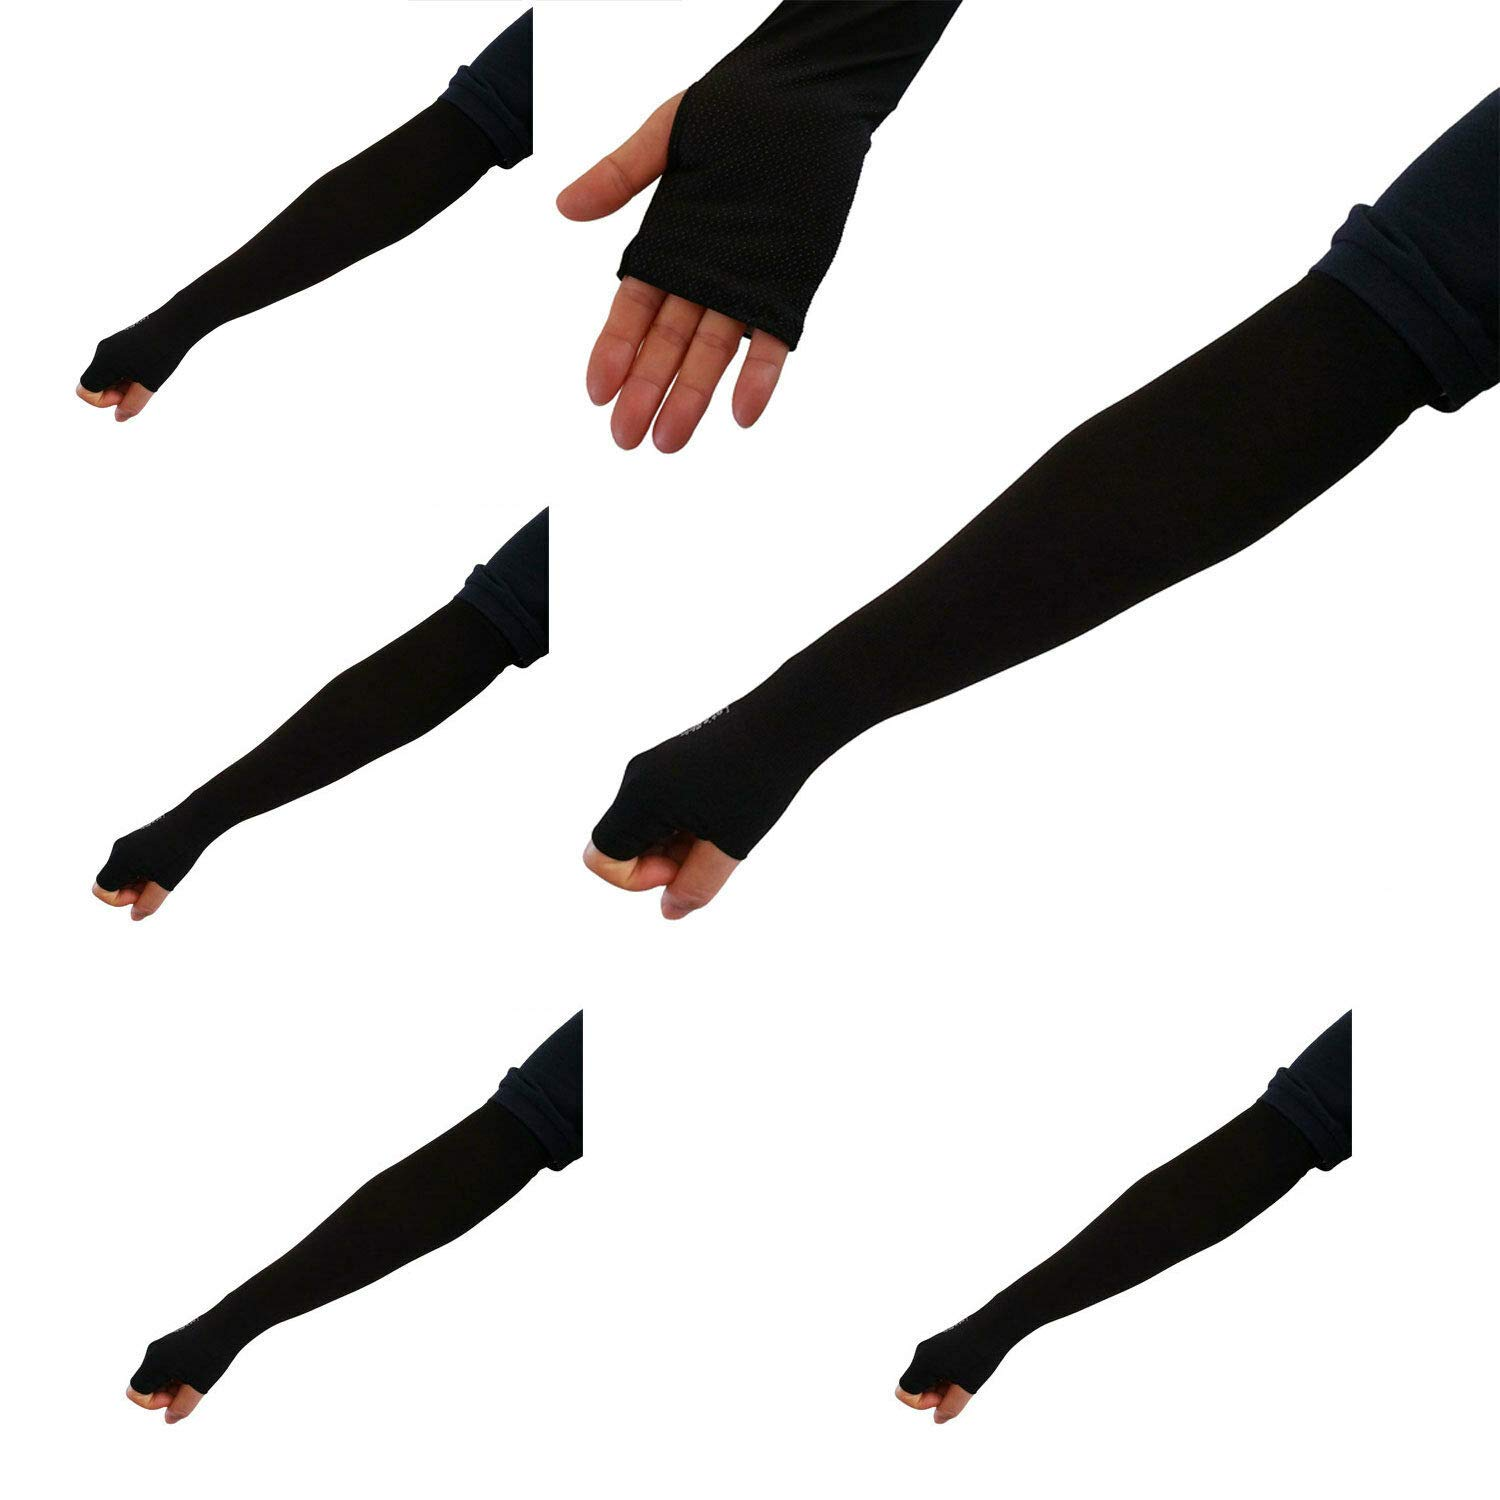 RR_joy 5 Pairs New Black Cooling Arm Sleeves Cover UV Sun Protection Outdoor Sports by RR_joy